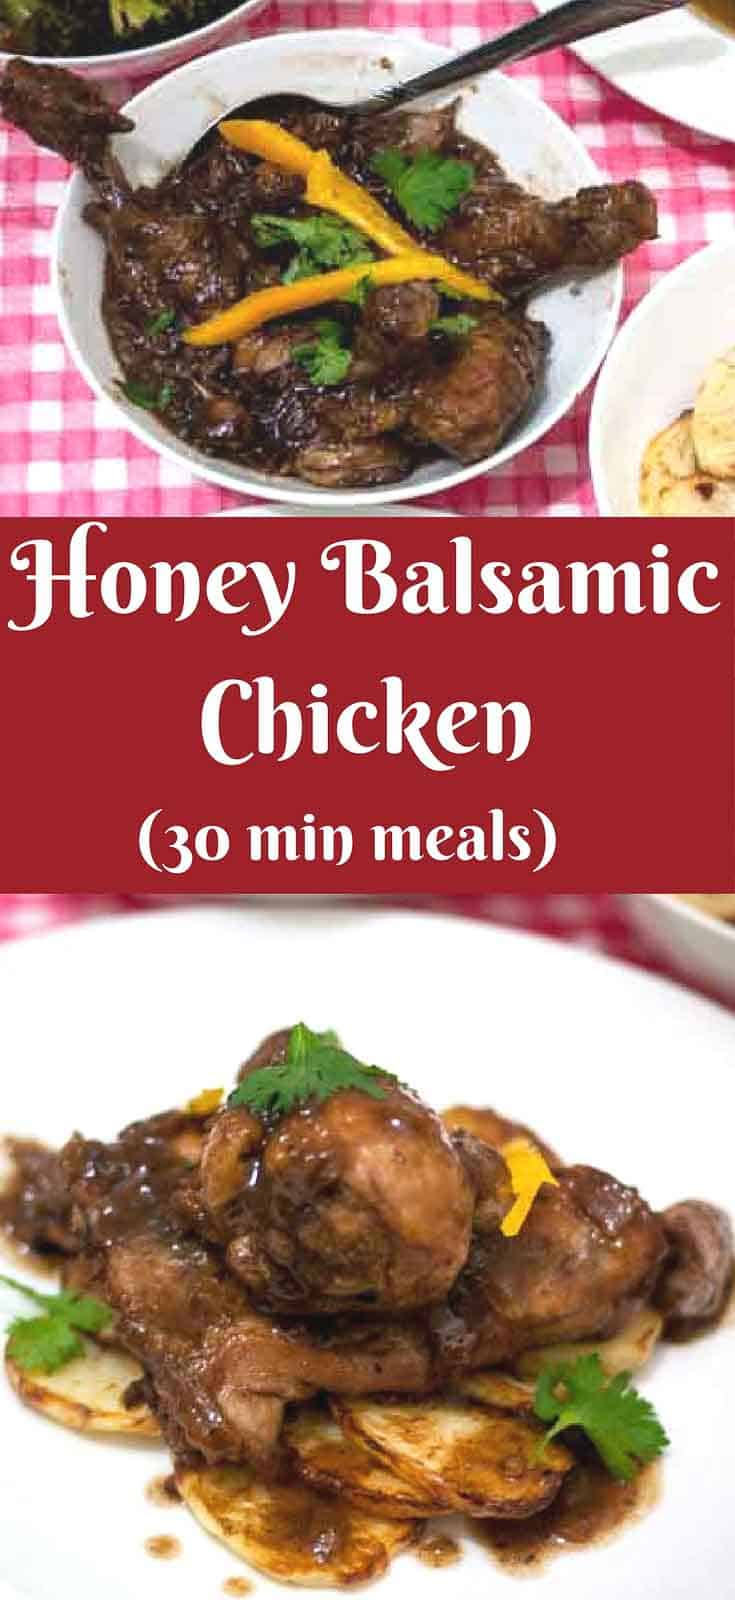 This Honey Balsamic Chicken is a delicious, simple, easy and effortless recipe to make with most ingredients you probably already have at home. The combination of honey and balsamic cooked into a sweet smooth sauce and tender chicken makes an absolute treat in just 30 mins.